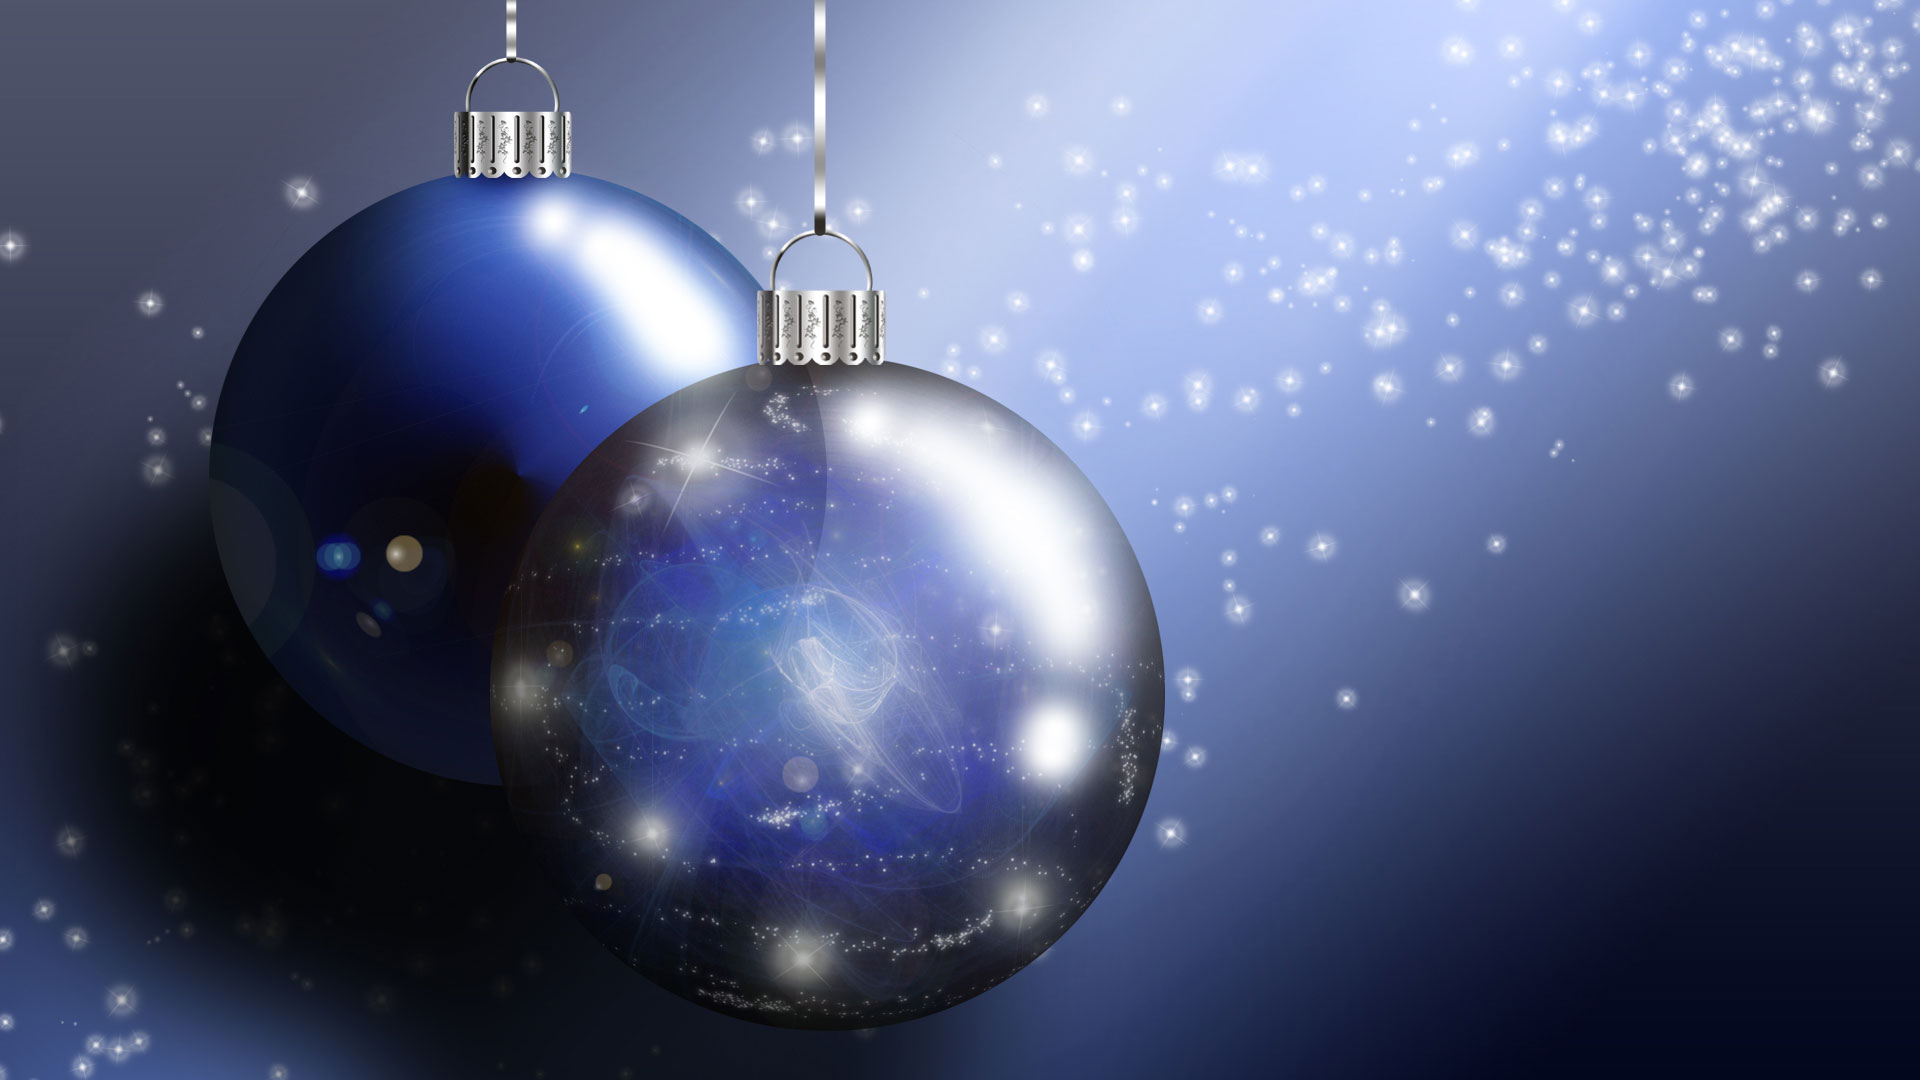 Free Download Wallpaperwiki Blue Christmas Ornaments Widescreen Wallpaper Pic 1920x1080 For Your Desktop Mobile Tablet Explore 35 Blue Ornaments Wallpapers Blue Ornaments Wallpapers Christmas Ornaments Wallpaper Christmas Ornaments